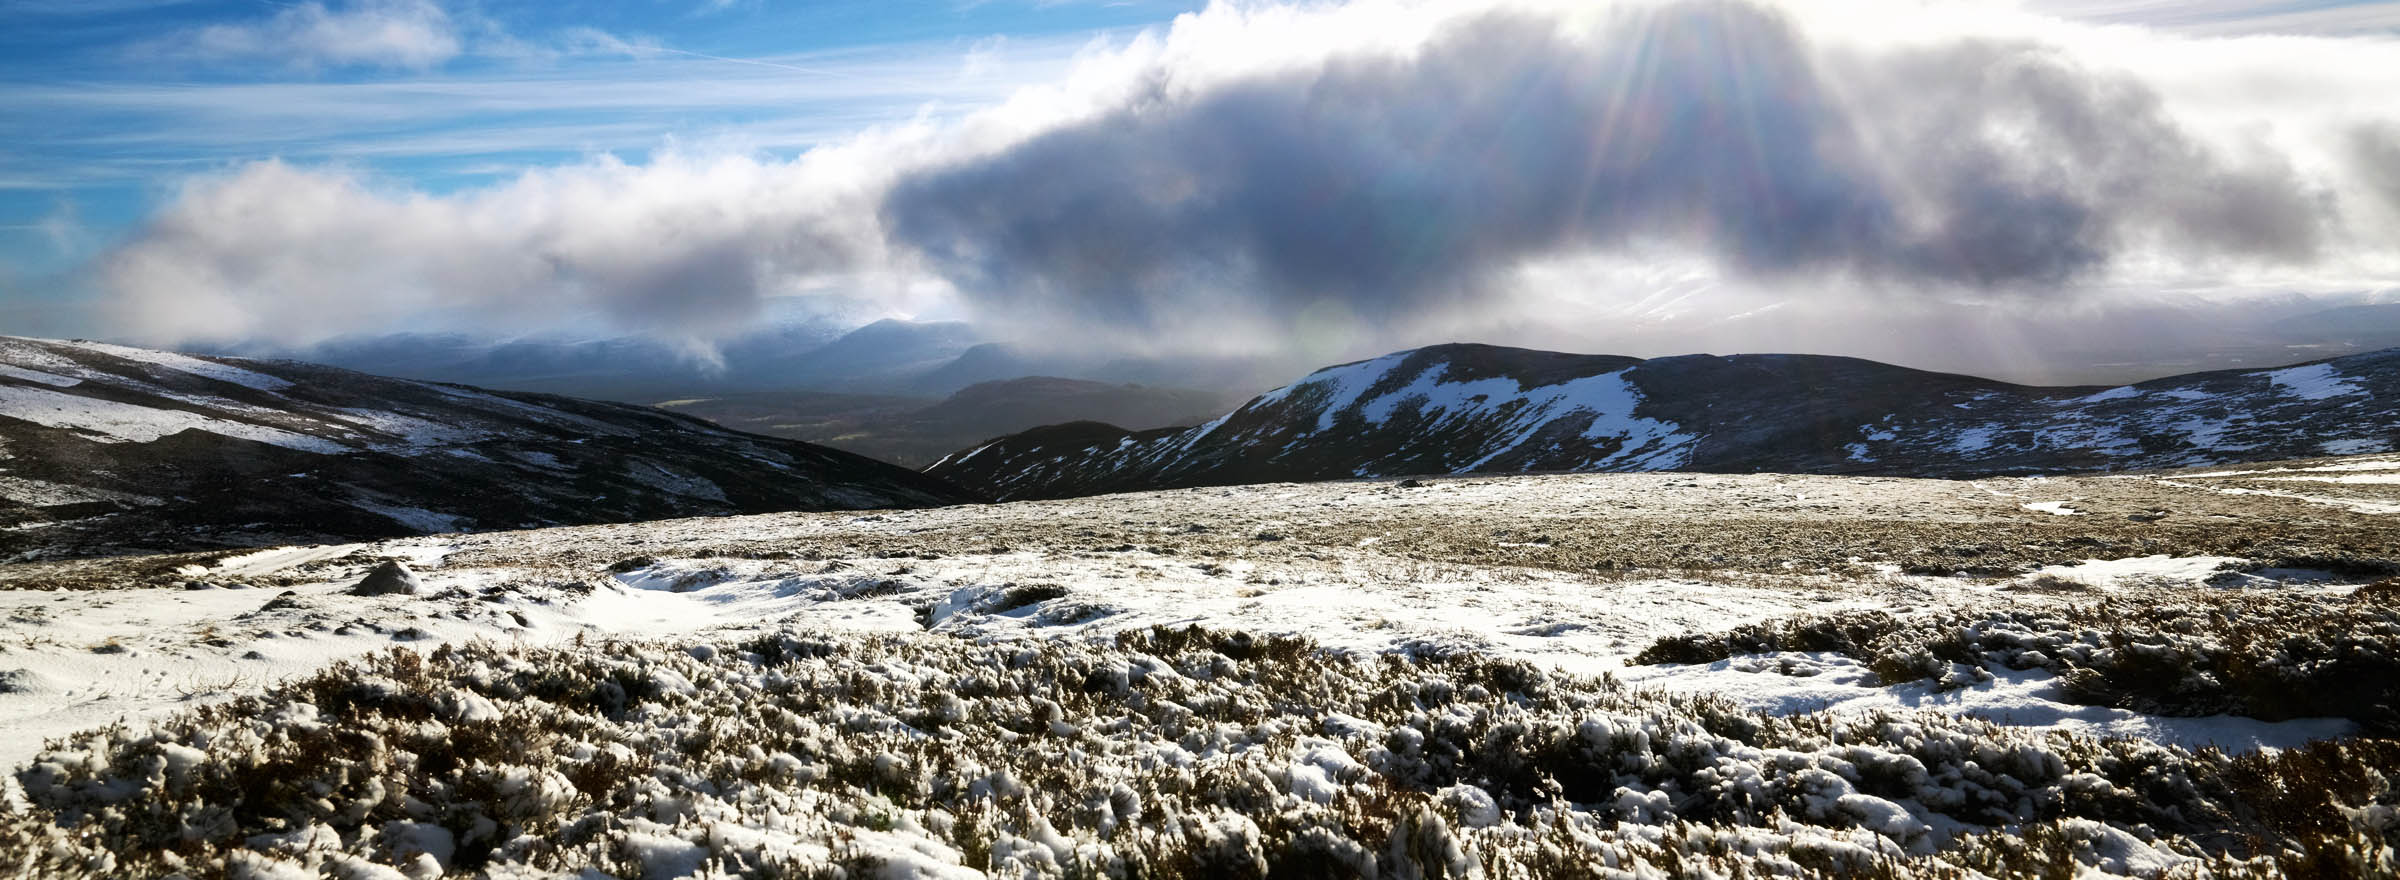 Summit of Geal-charn Mor in the Cairngorms